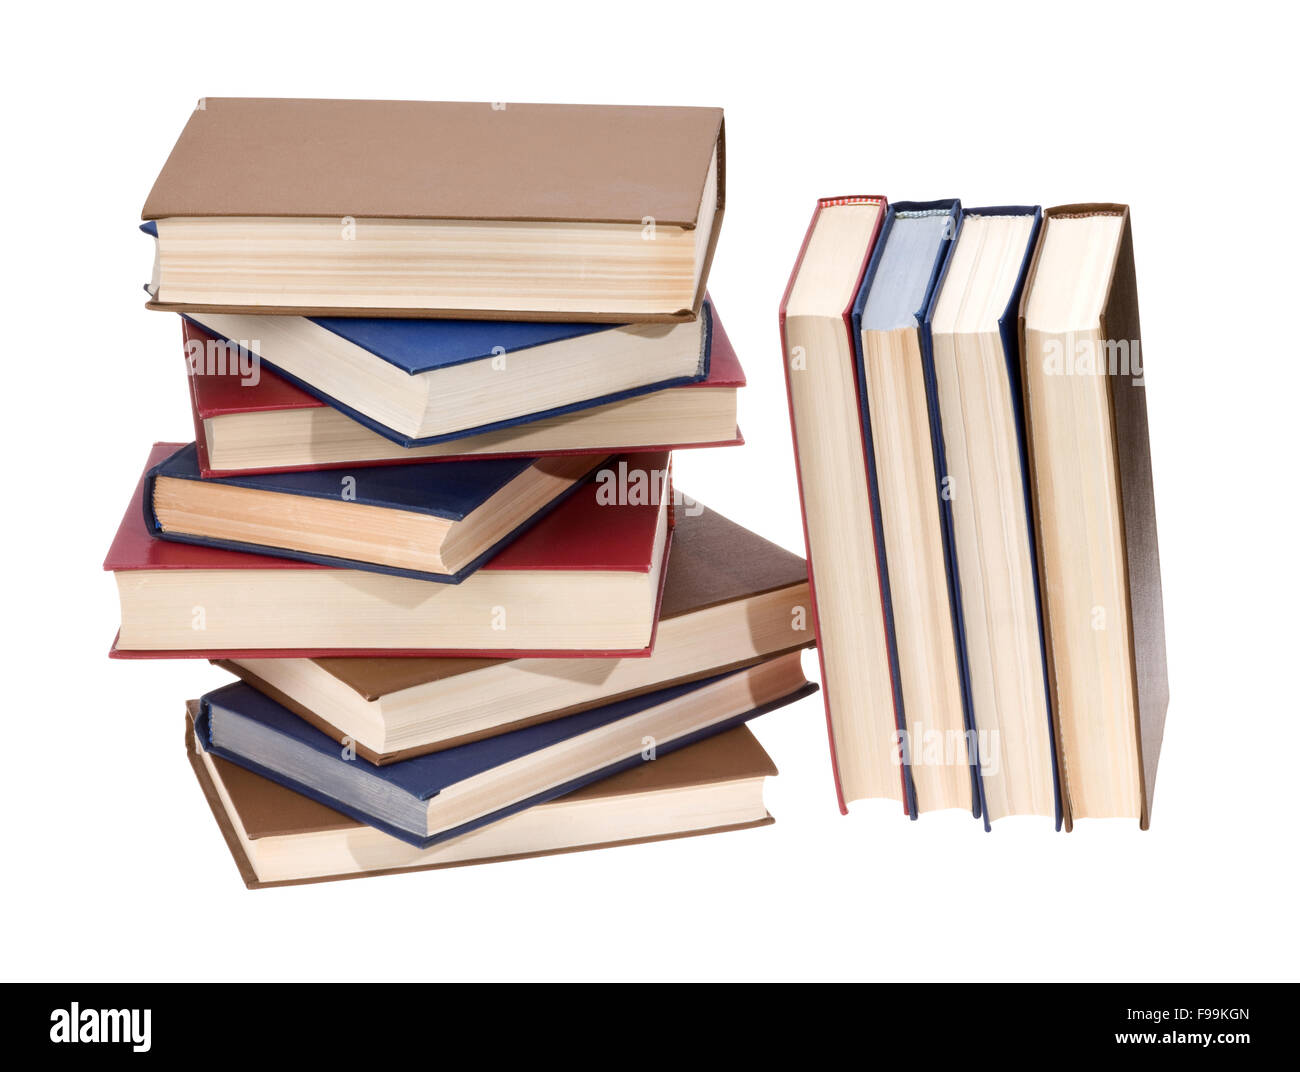 Book stack - Stock Image